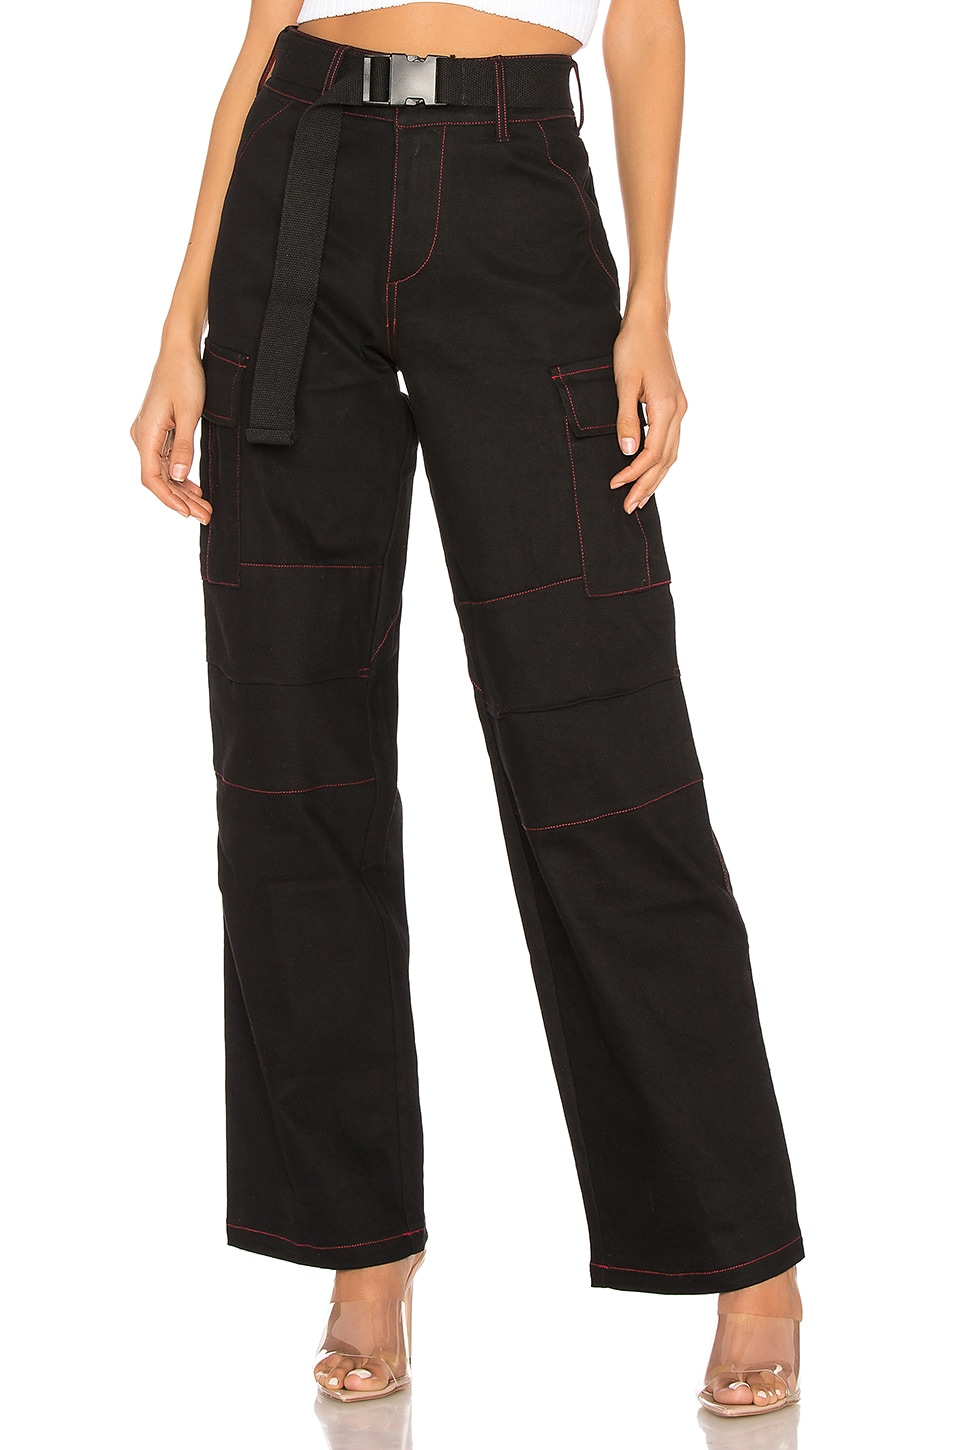 I.AM.GIA PANTALON ACE